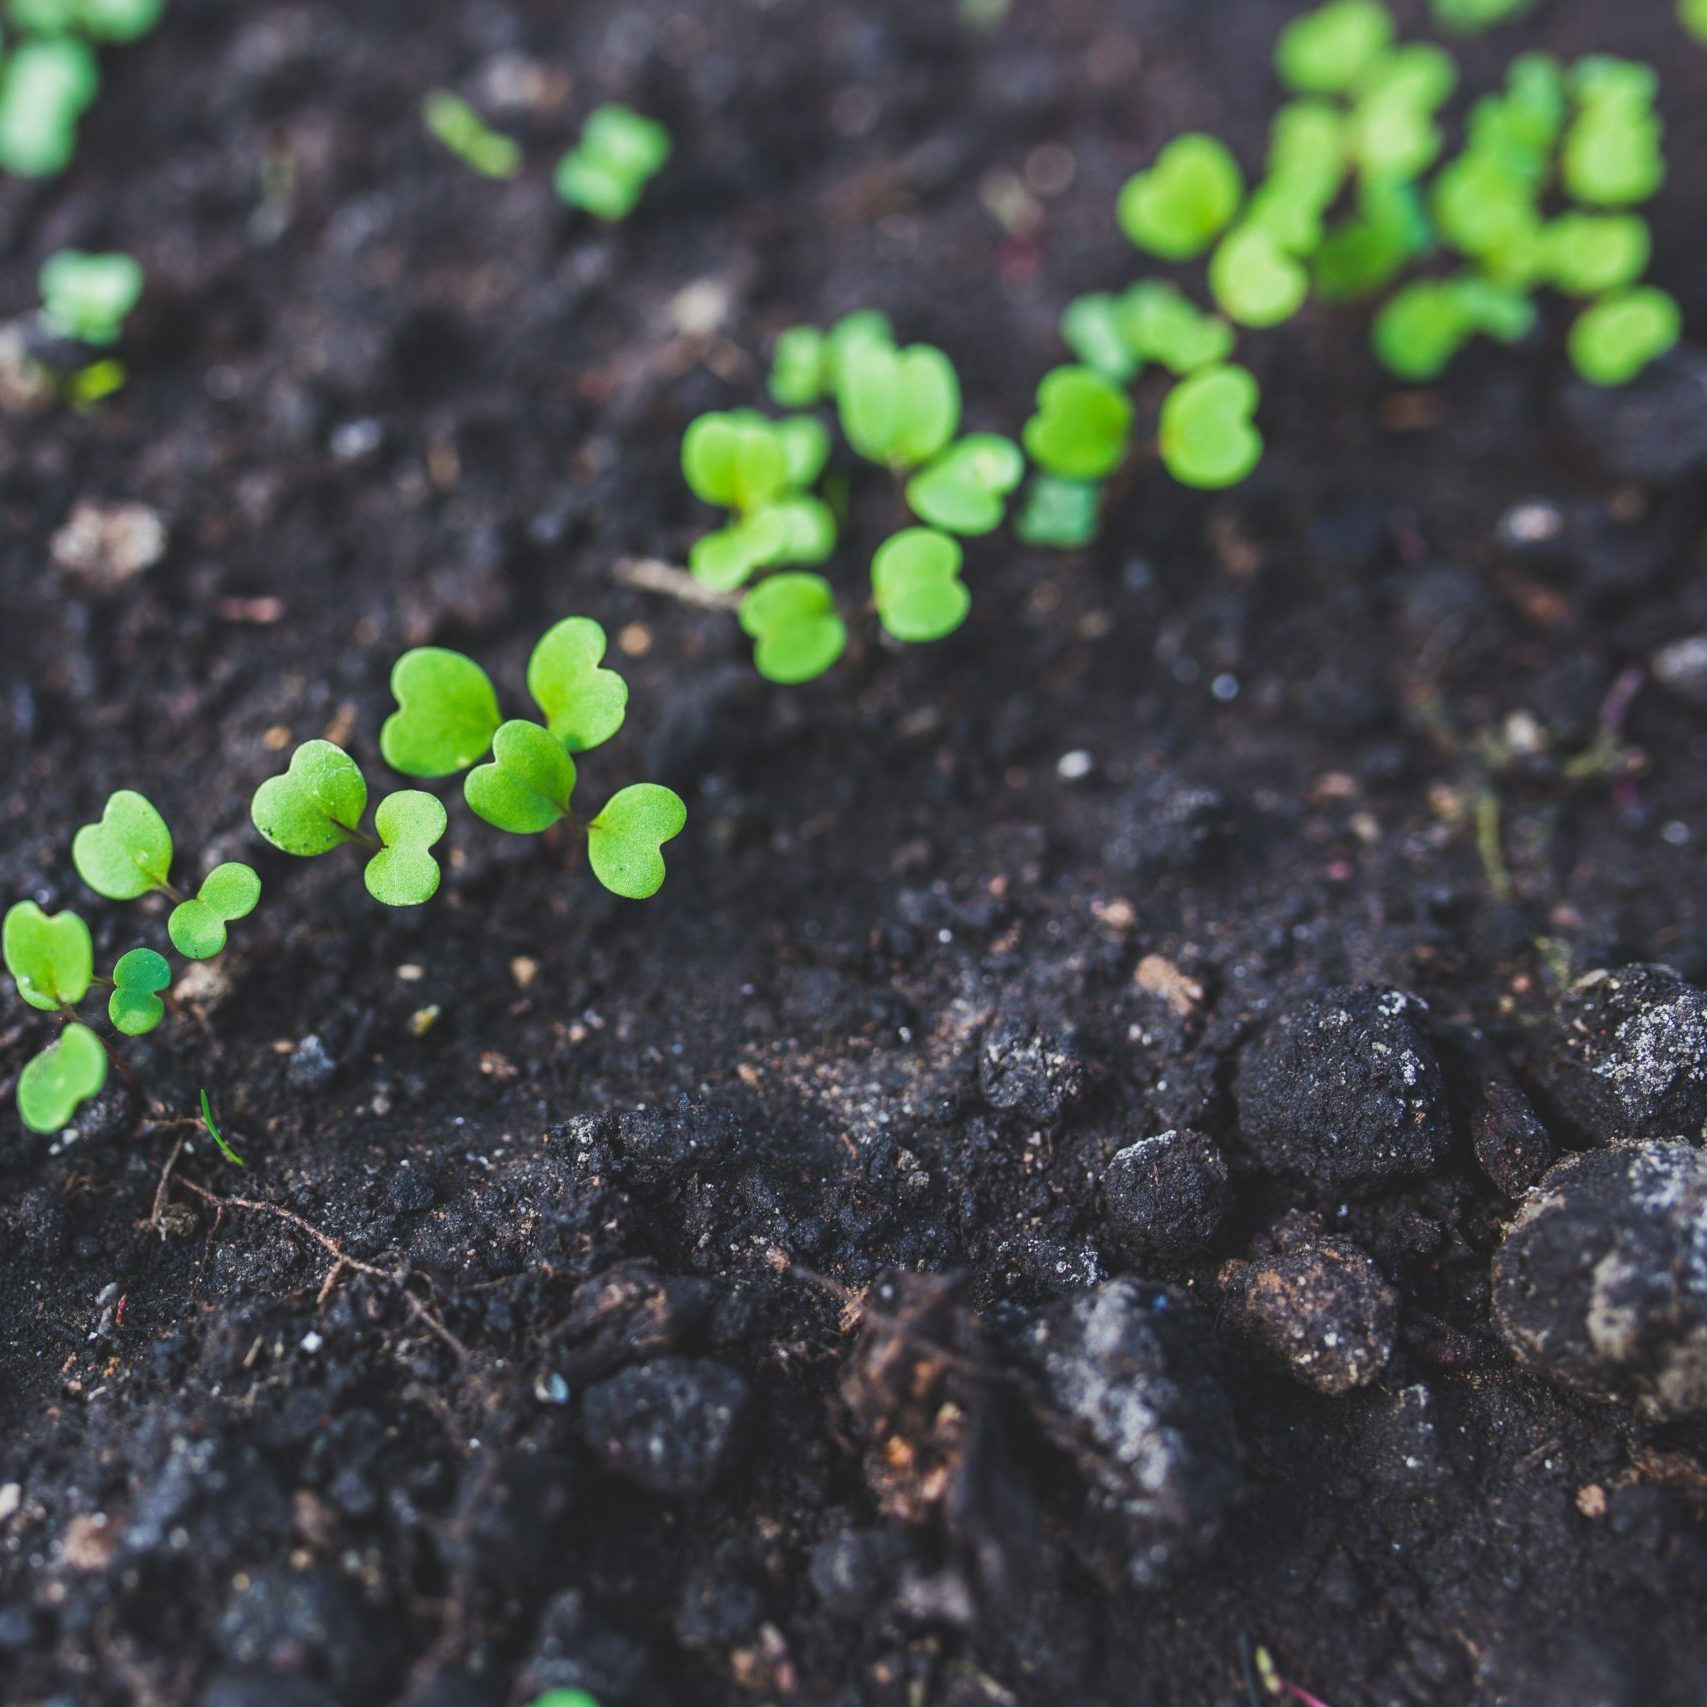 Seedlings sprout from dark soil